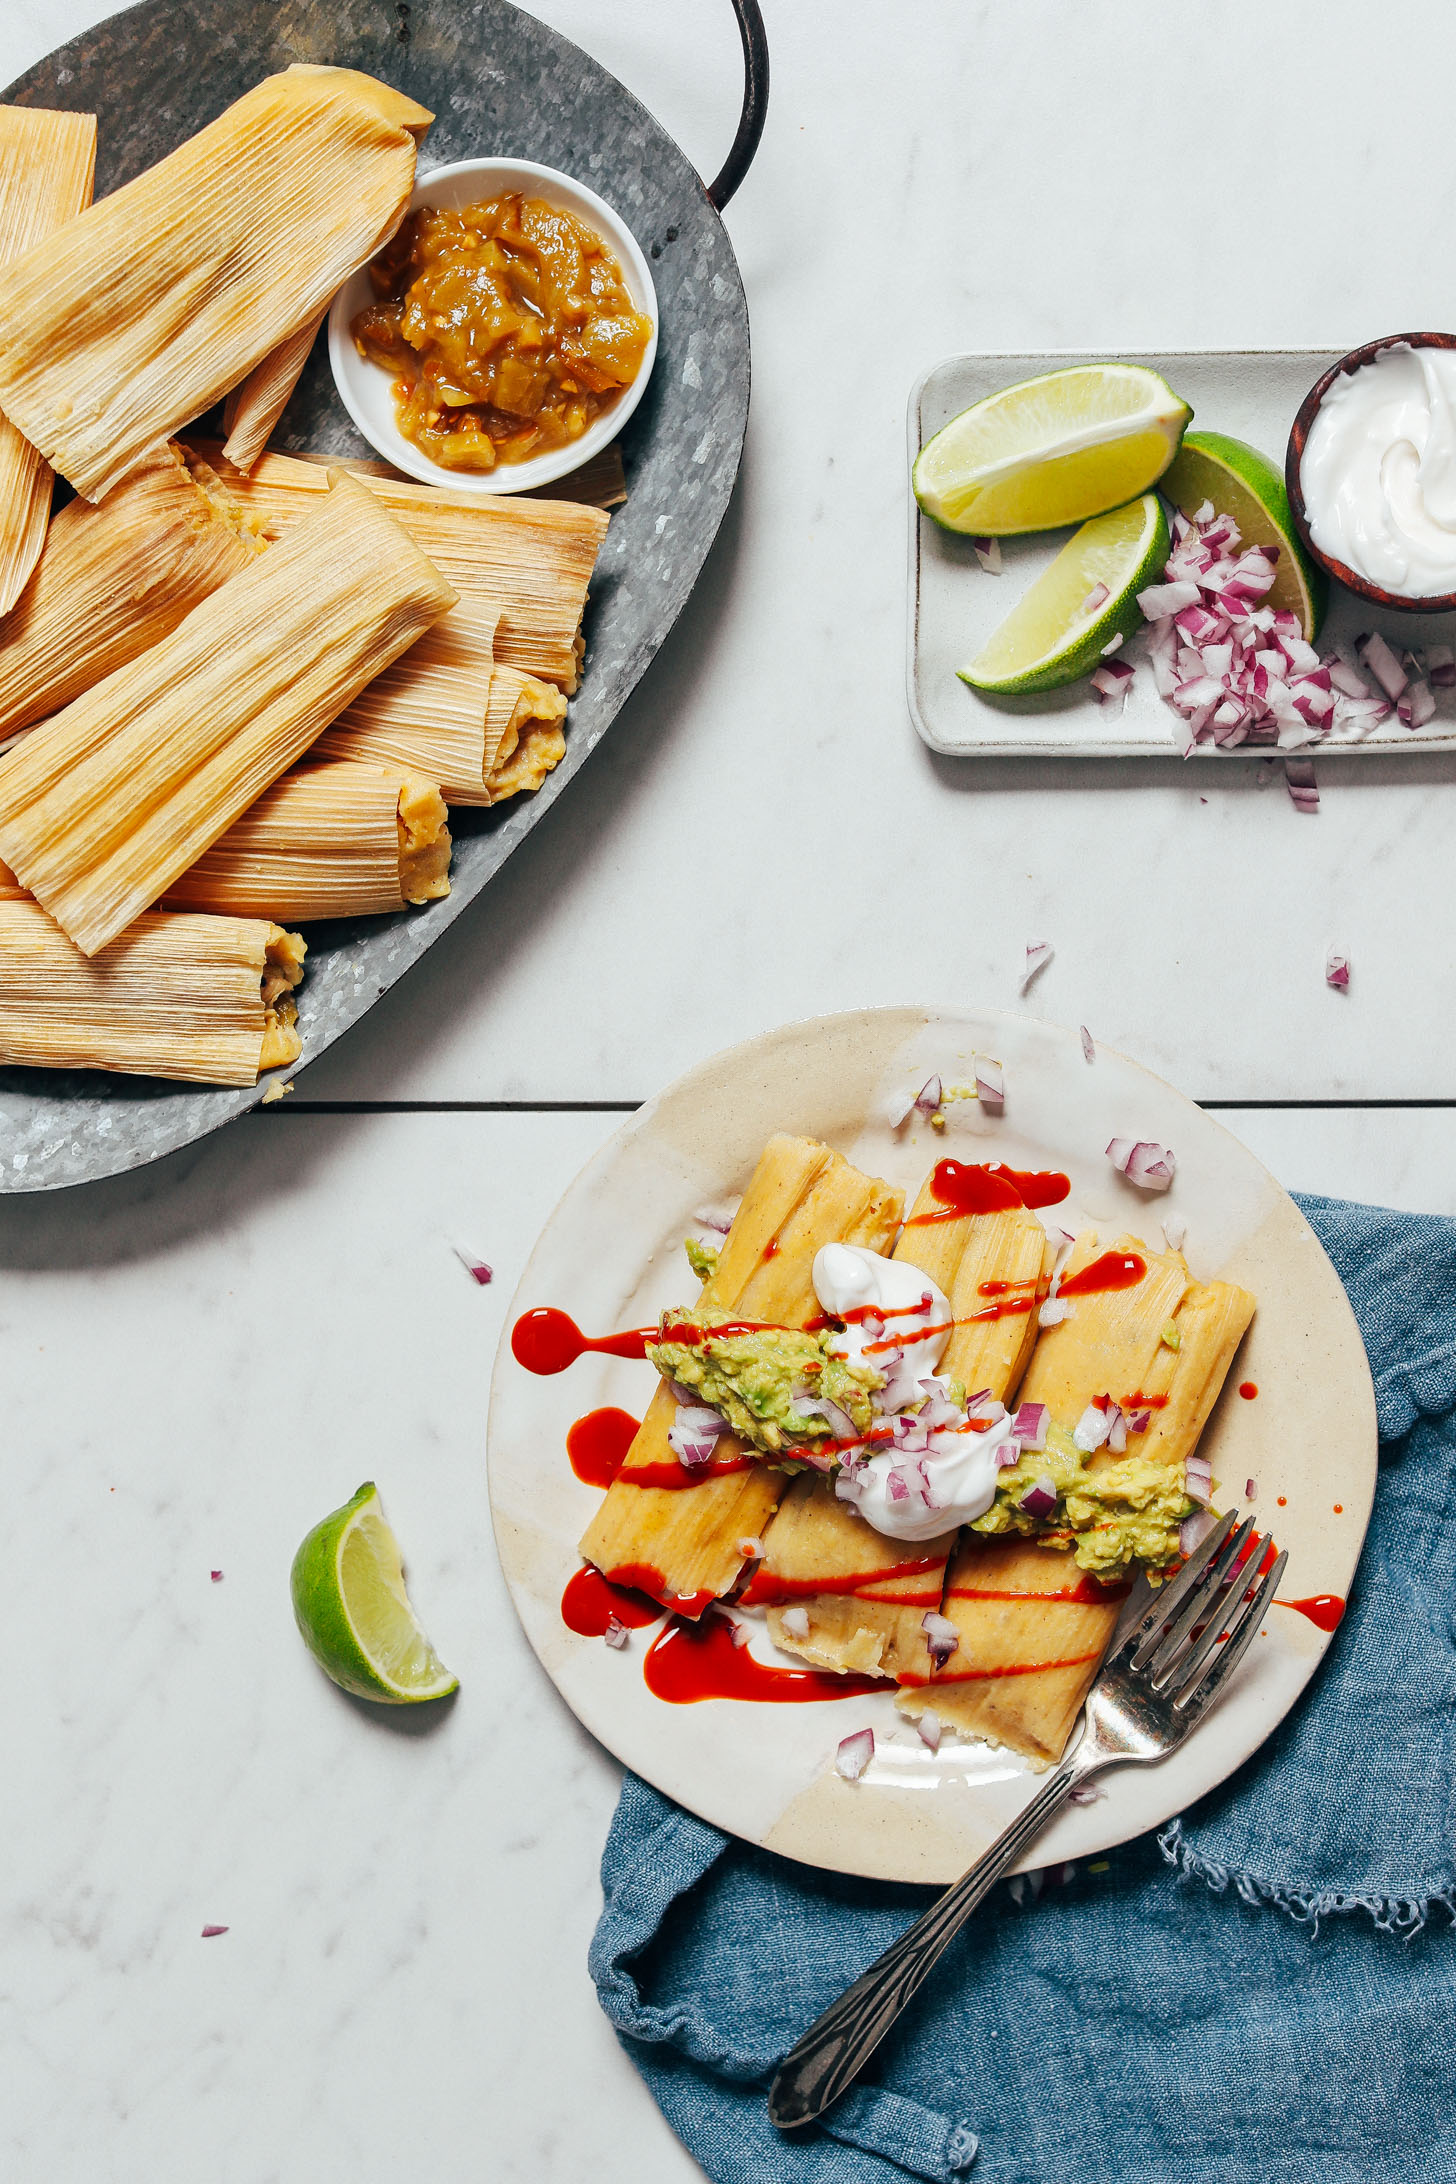 Platter of tamales next to a plate of Green Chile Chicken Tamales topped with guacamole, coconut yogurt, red onion, and hot sauce